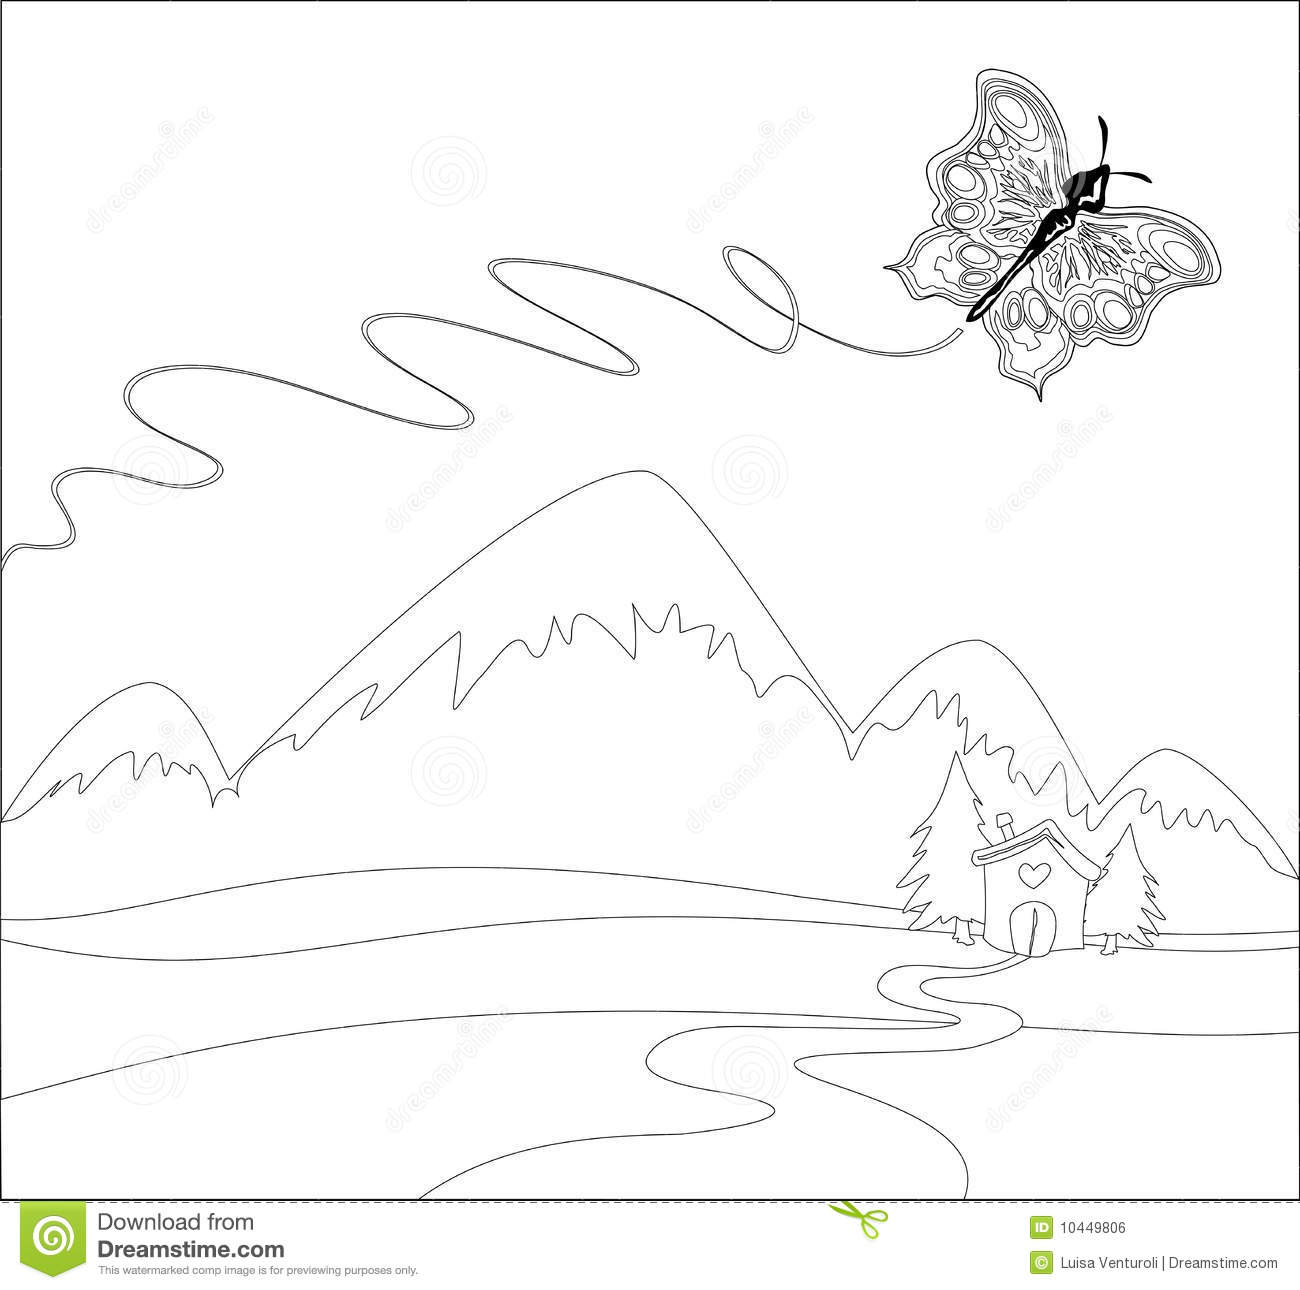 butterfly flying on mountains image to color royalty free stock